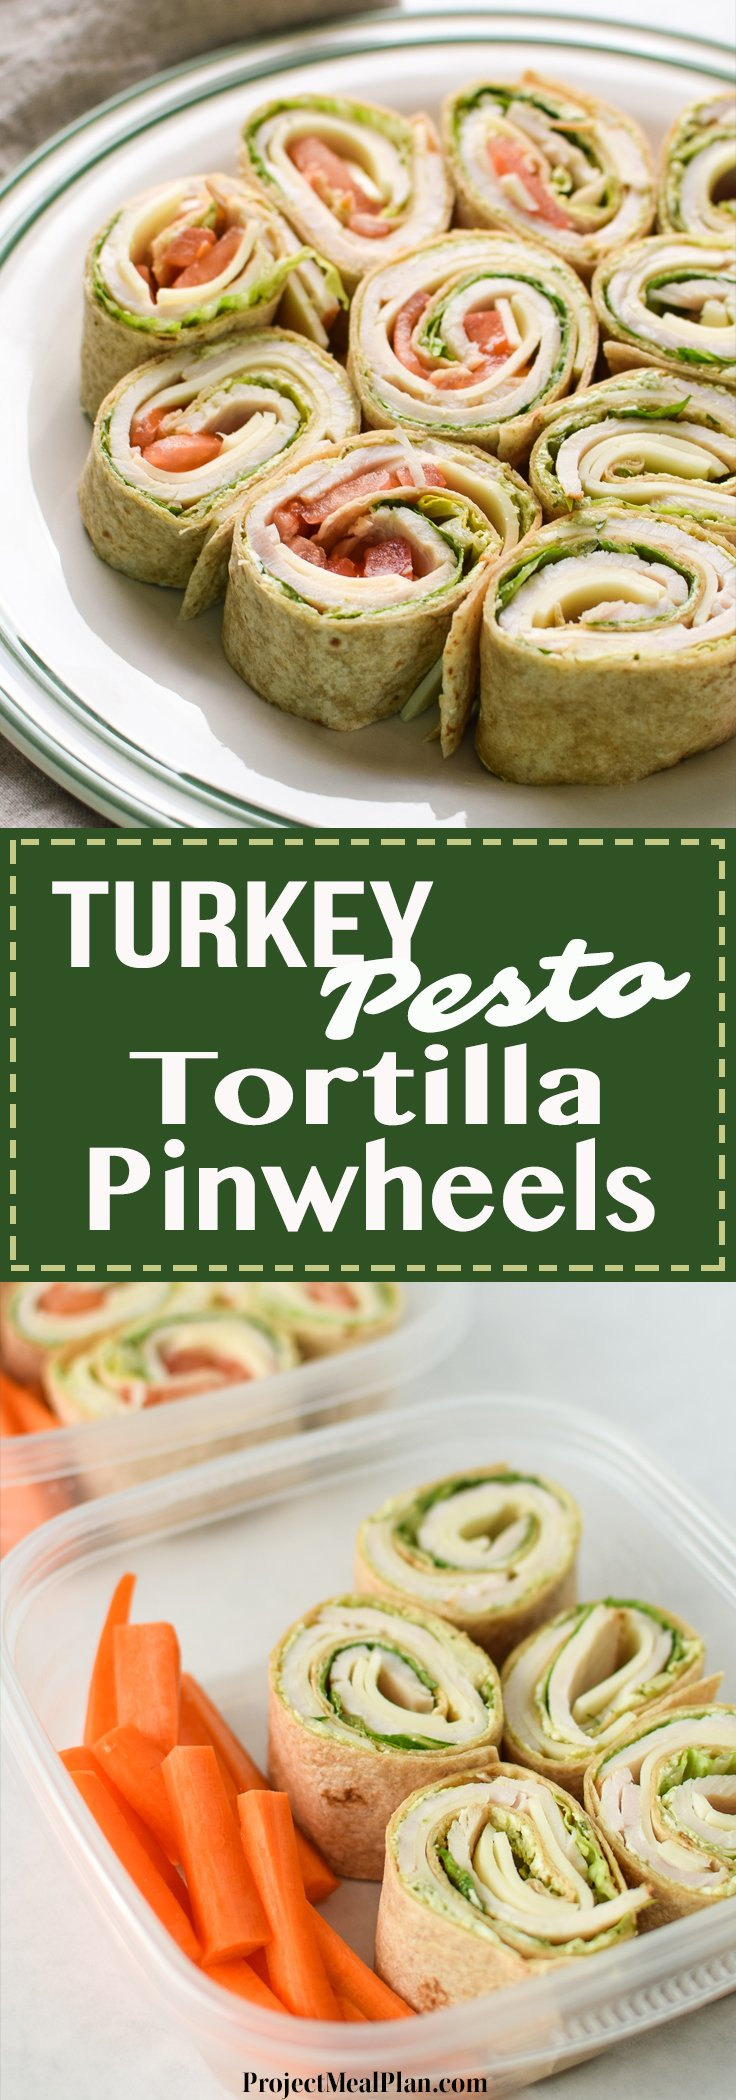 Turkey Pesto Tortilla Pinwheels